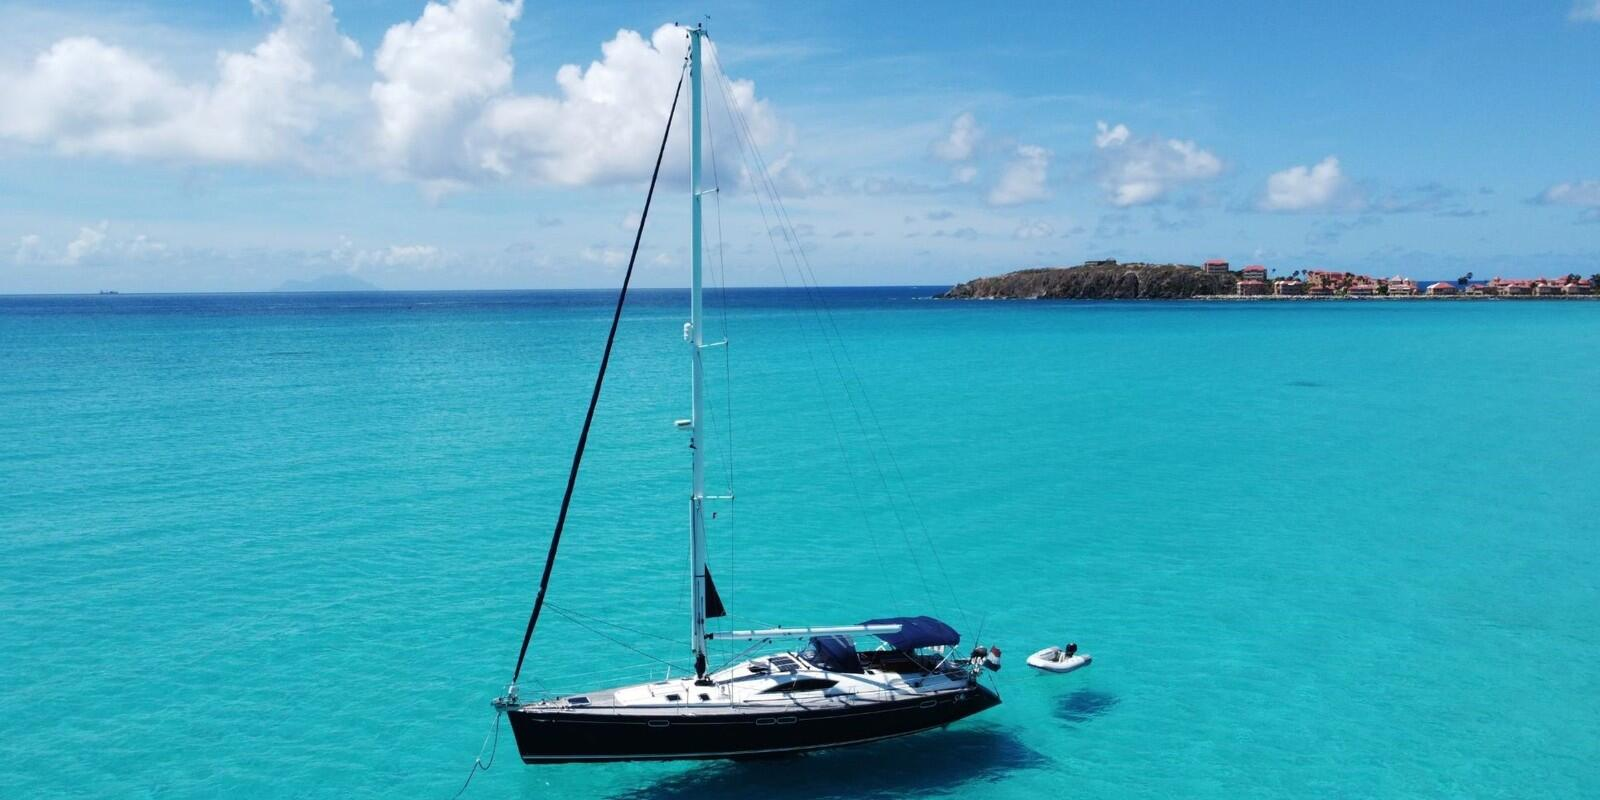 7 Days Sailing Cruise around St. Maarten and the BVI's incl. breakfast and lunch on board